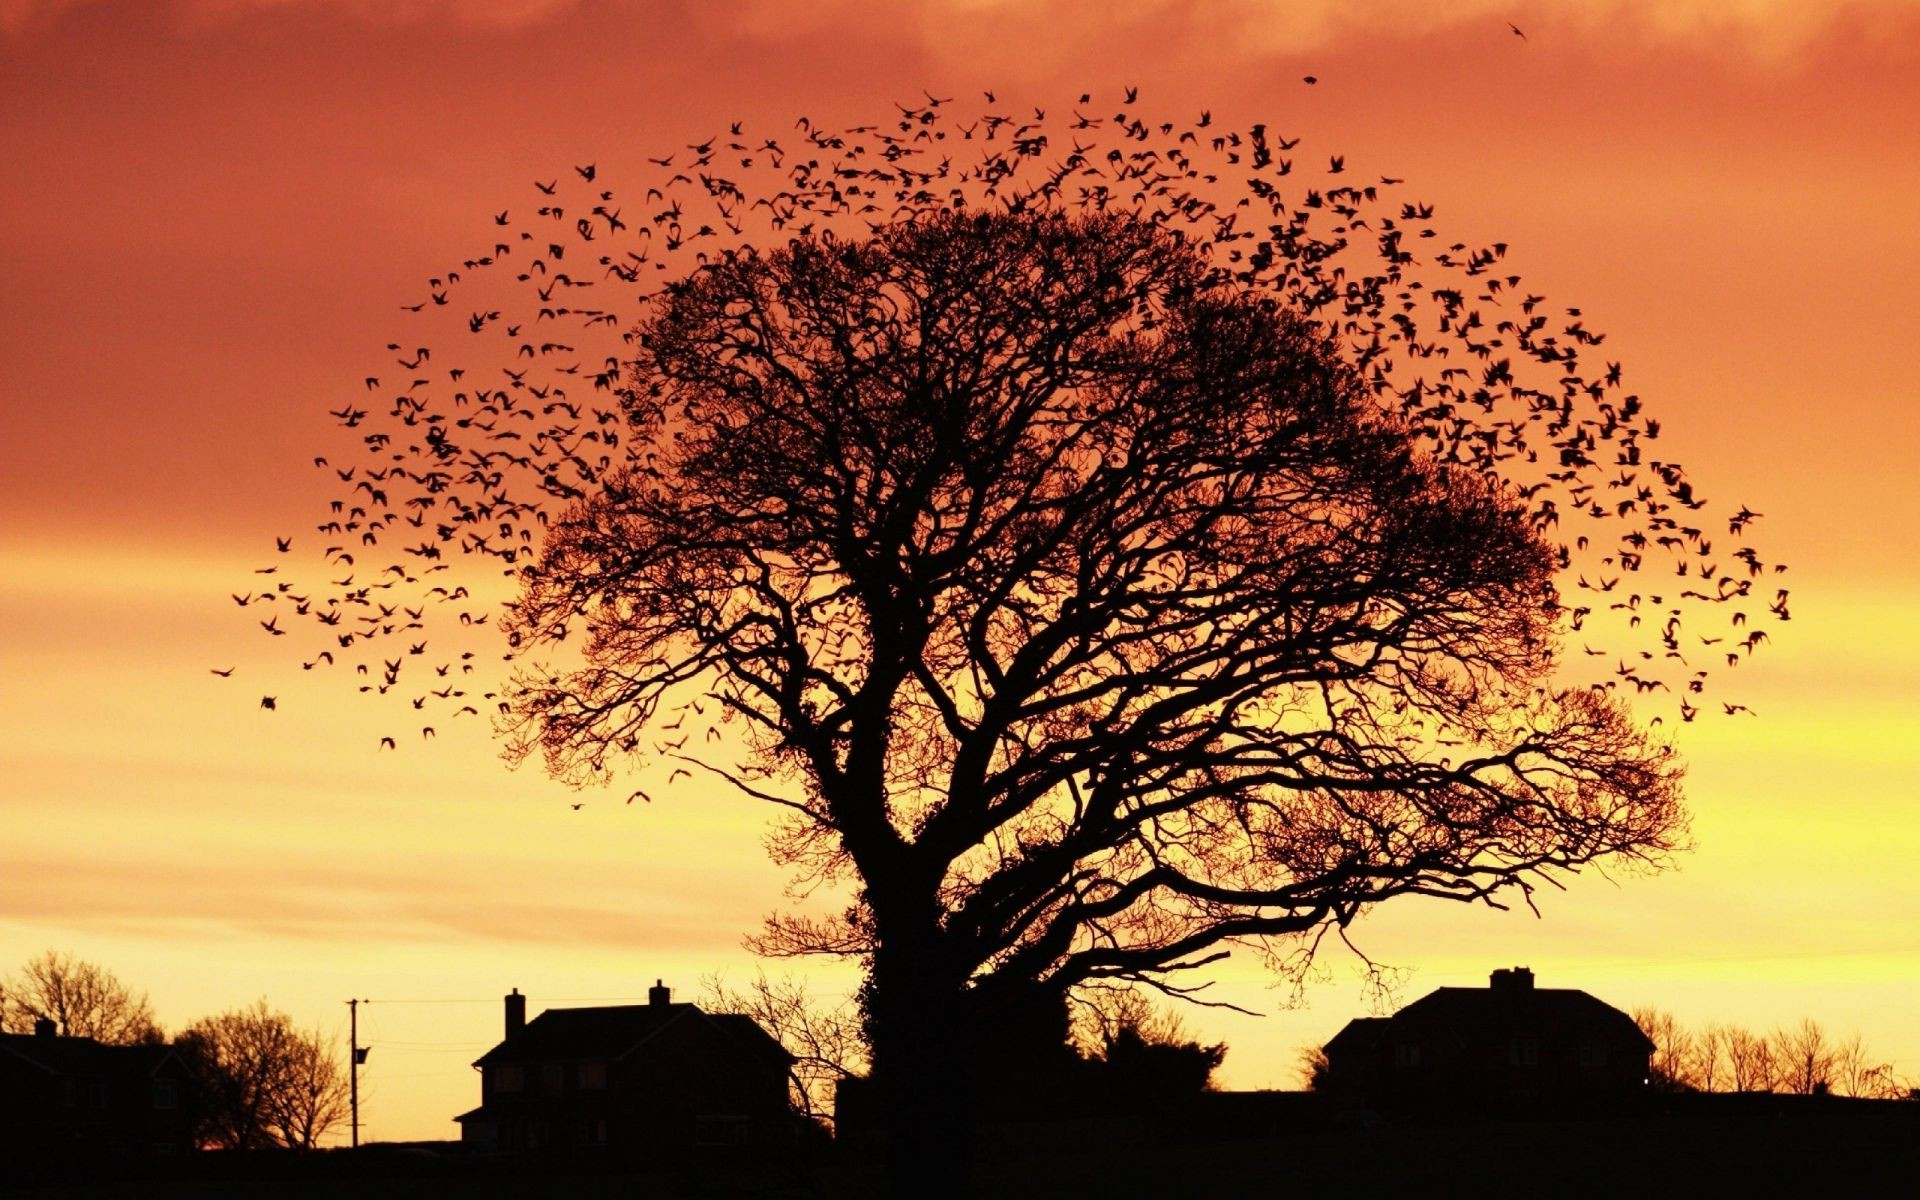 tree. at sunset, the fall of the house of a flock of birds